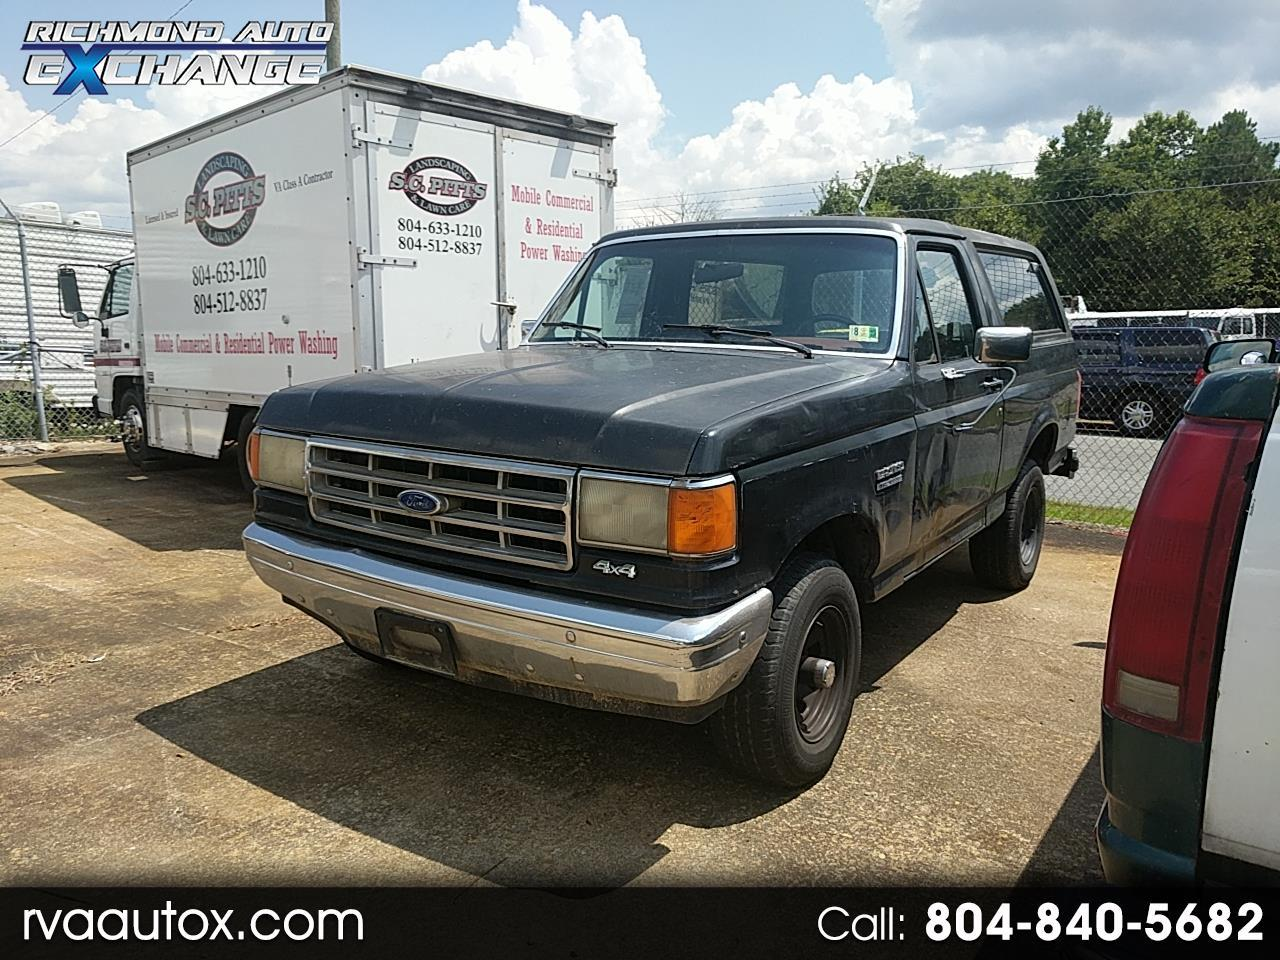 1988 Ford Bronco $1250